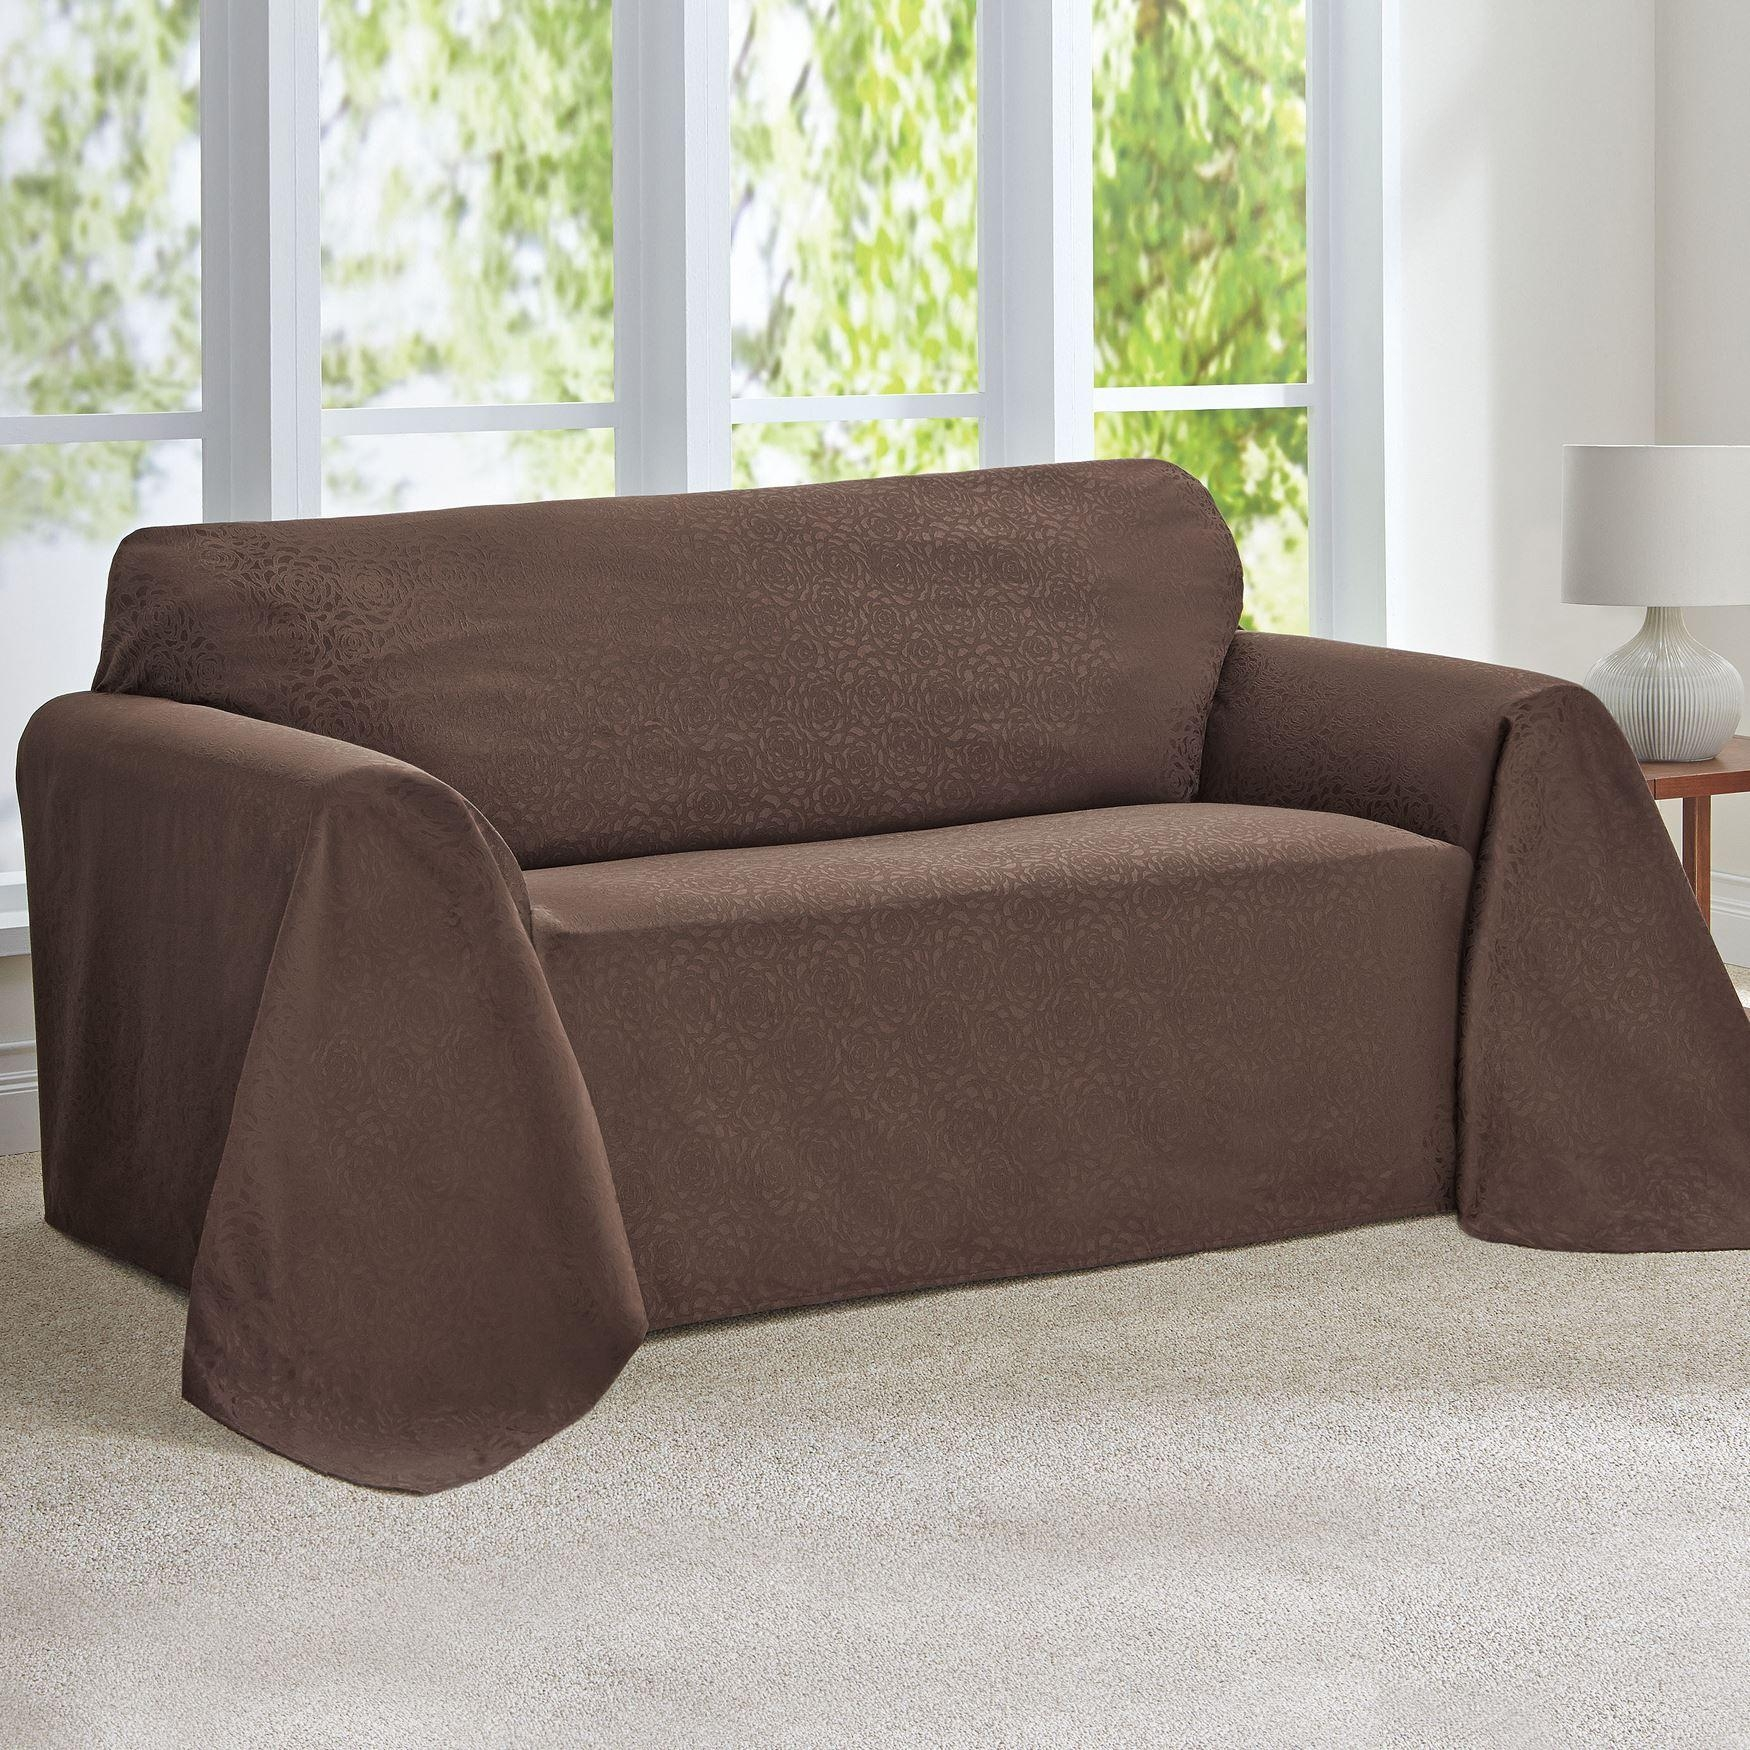 Furniture: Sofa Covers Walmart | Walmart Couch Covers | Slip In Covers For Sofas And Chairs (View 6 of 20)